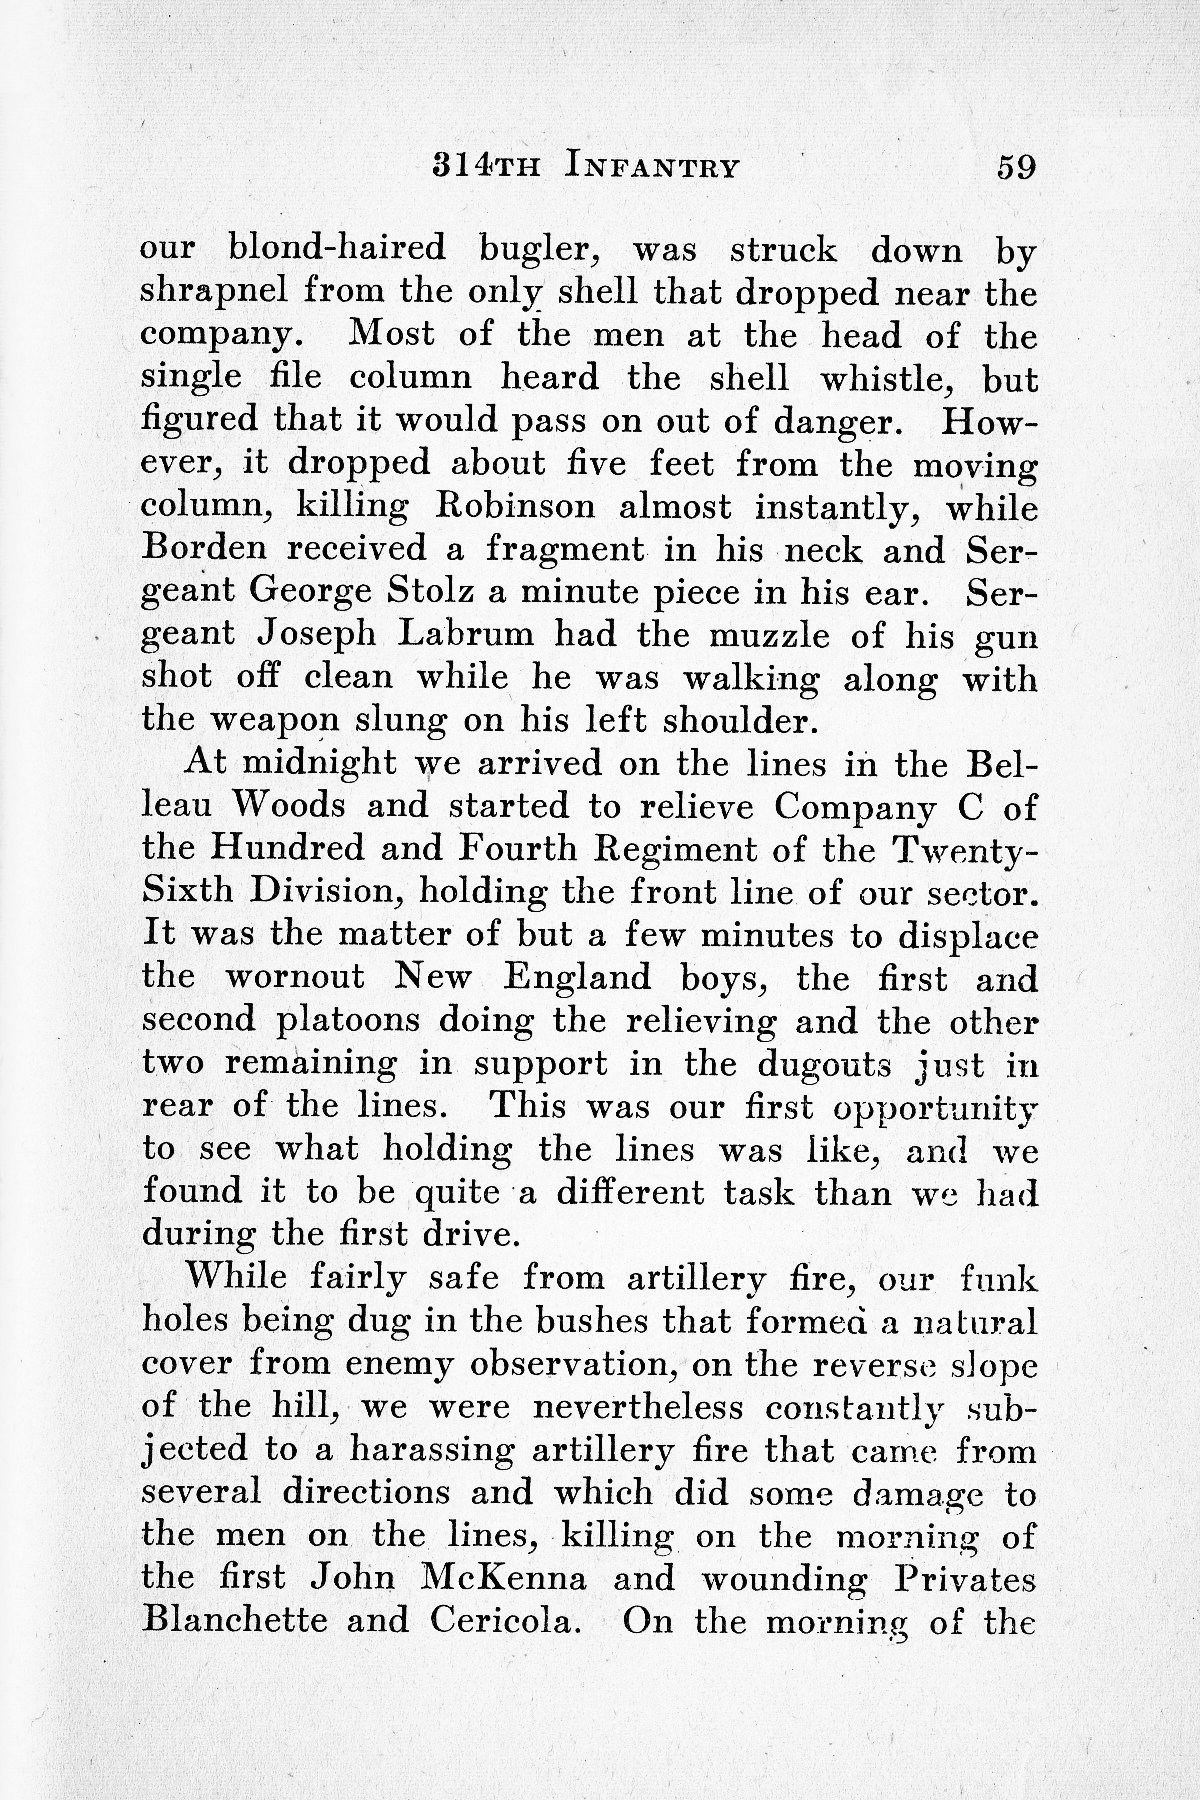 History of Company G 314th Infanty - Page 059